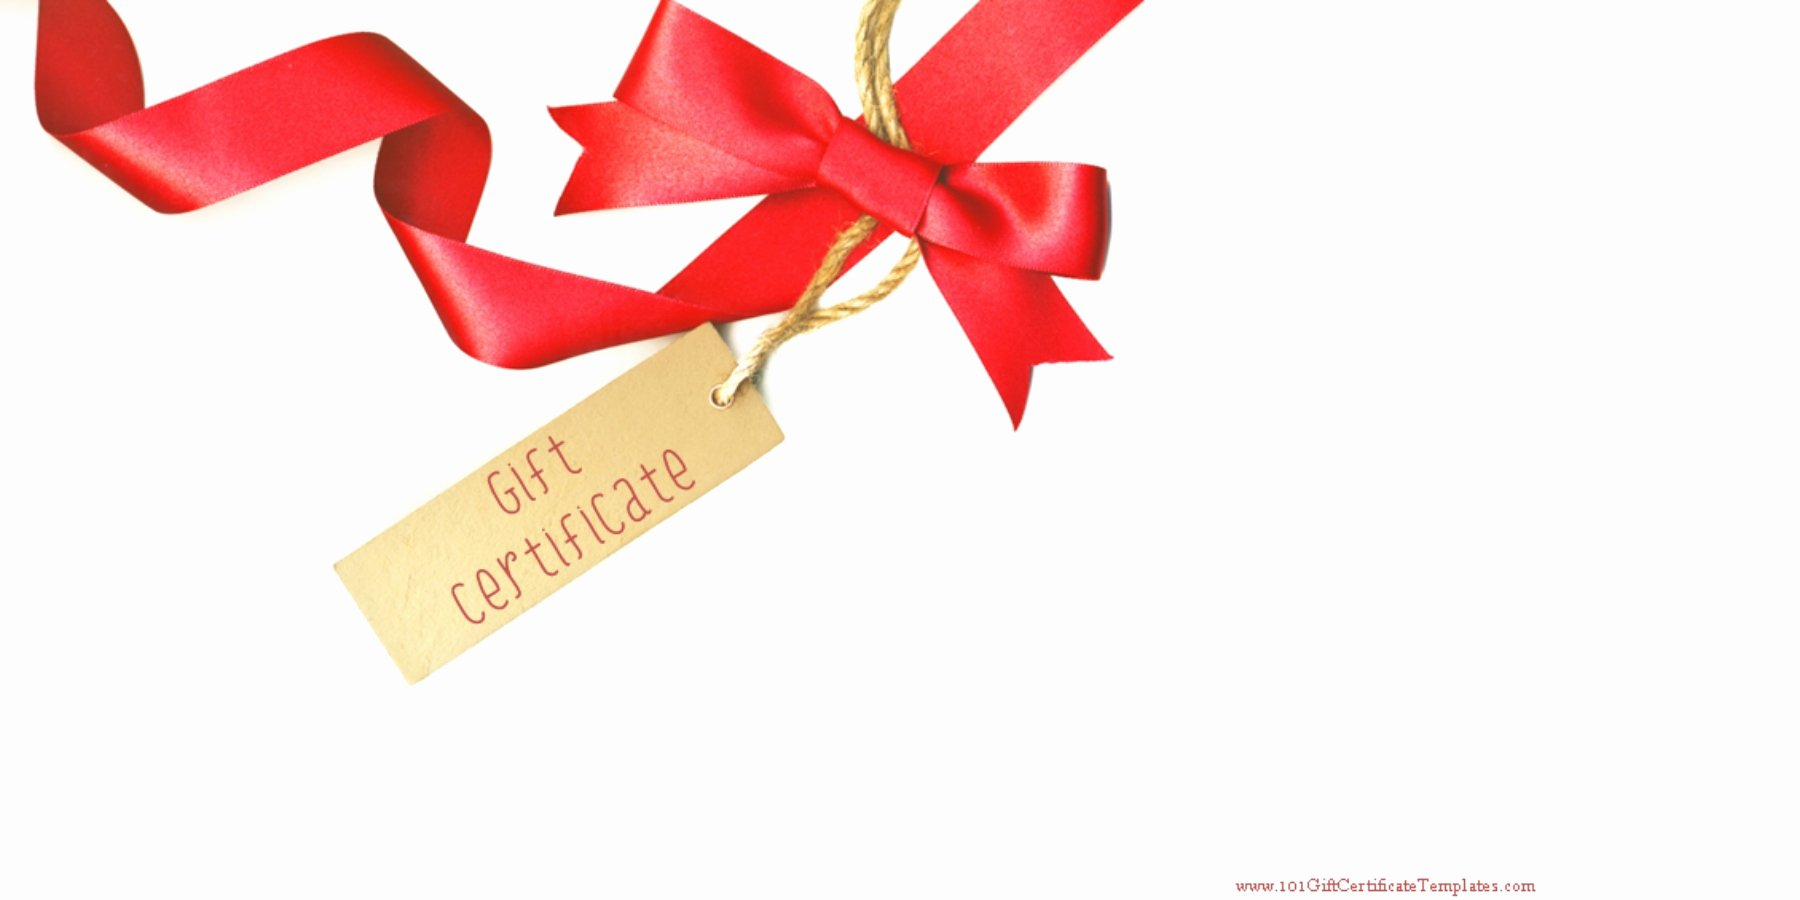 Gftlz Gift Certificate Template Download Awesome Gift Voucher Template Clipart Best